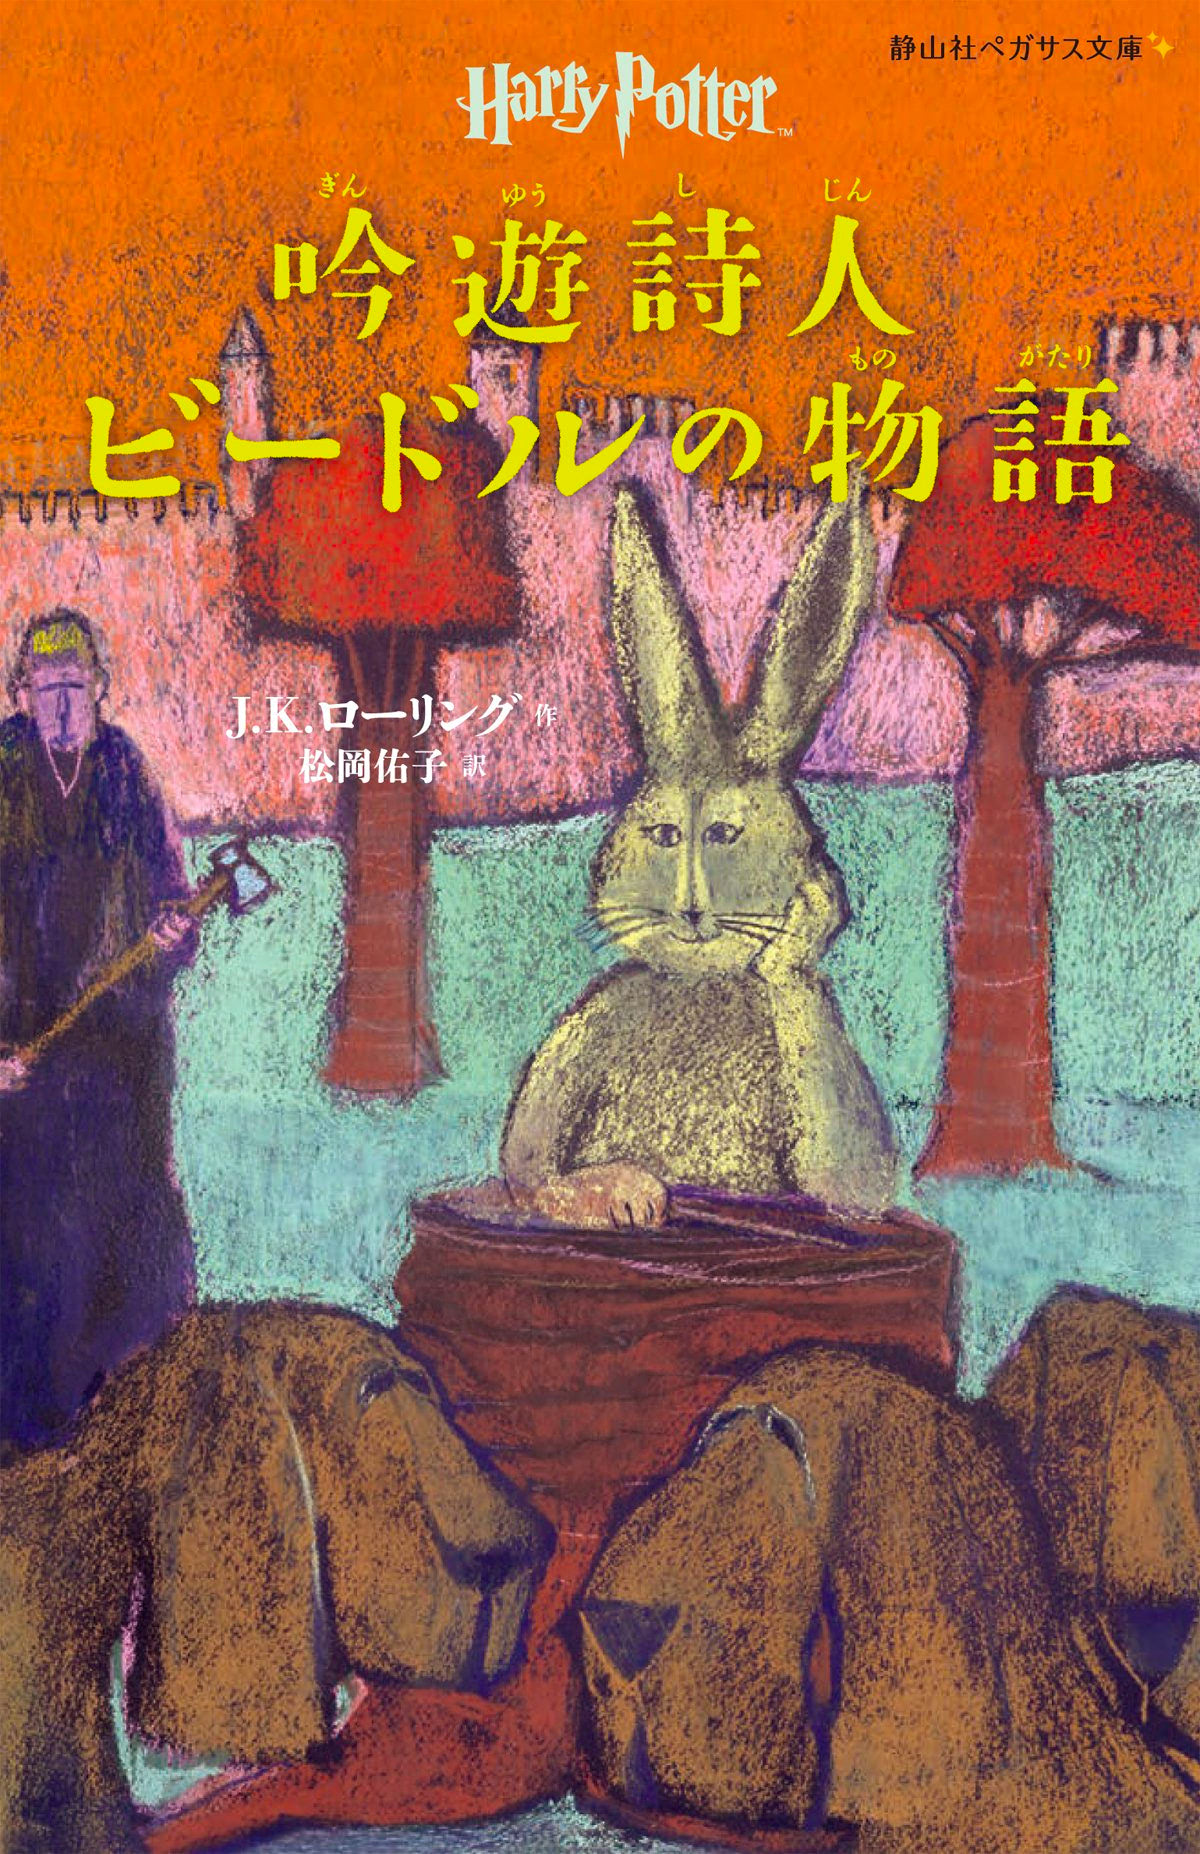 'Beedle the Bard' Japanese edition